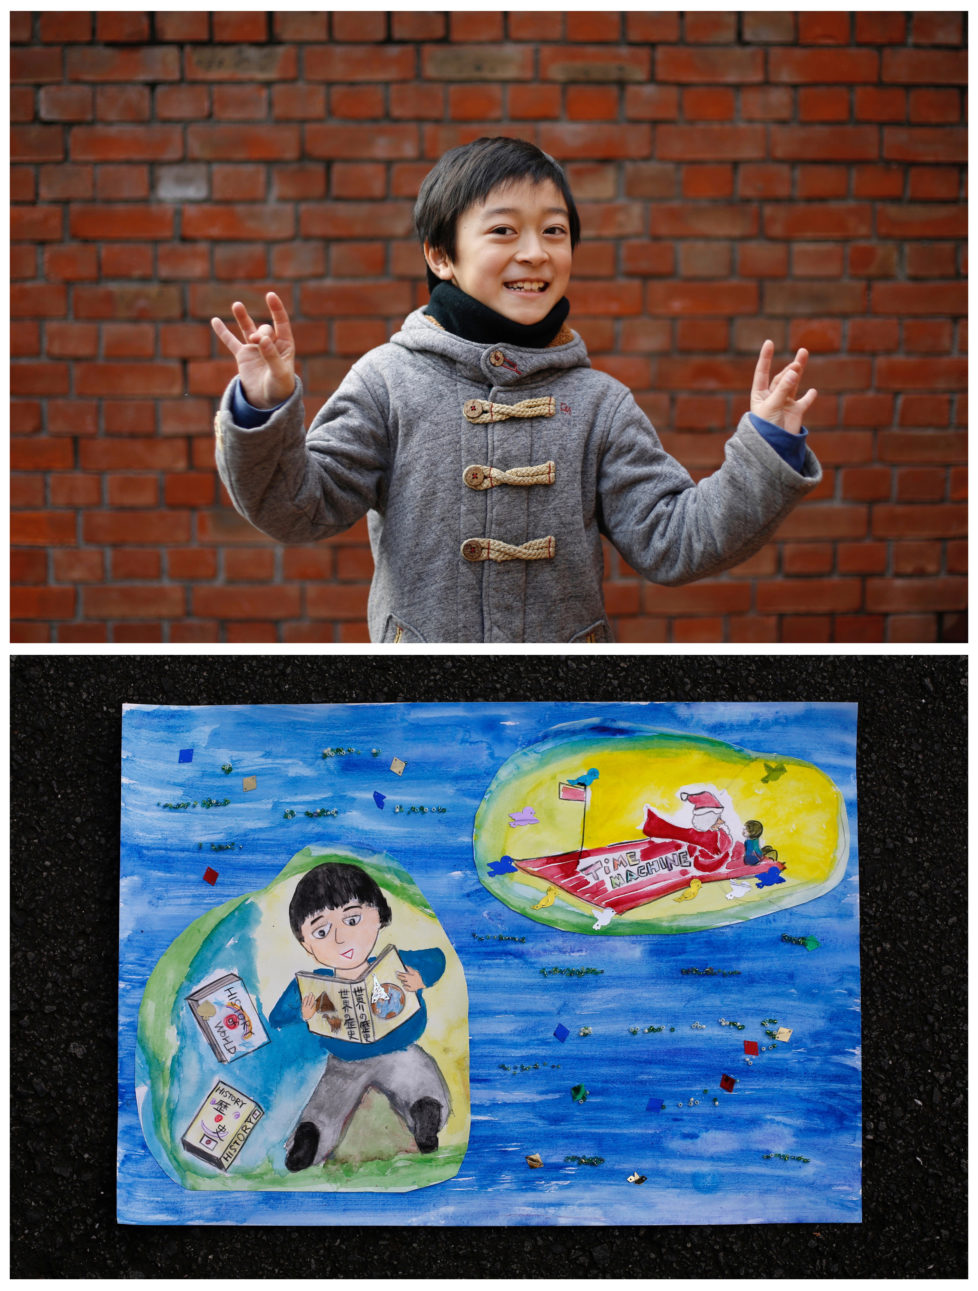 "A combination picture shows Natsuki Ariga, 9, posing for a photograph at a library (top) and his drawing of what he wants to get for Christmas from Santa, in Tokyo, Japan December 1, 2016. Natsuki wants to get comic books on Japanese and world history. ""Santa gives me a present every year for working hard. That's why I practice Electone (Yamaha's electronic organ), abacus and track and field very hard, "" he said. Reuters photographers around the world asked children to draw what they wanted to receive from Santa for Christmas. REUTERS/Toru Hanai SEARCH ""CHRISTMAS WISHES"" FOR THIS STORY. SEARCH ""WIDER IMAGE"" FOR ALL STORIES. - RTSV35U"